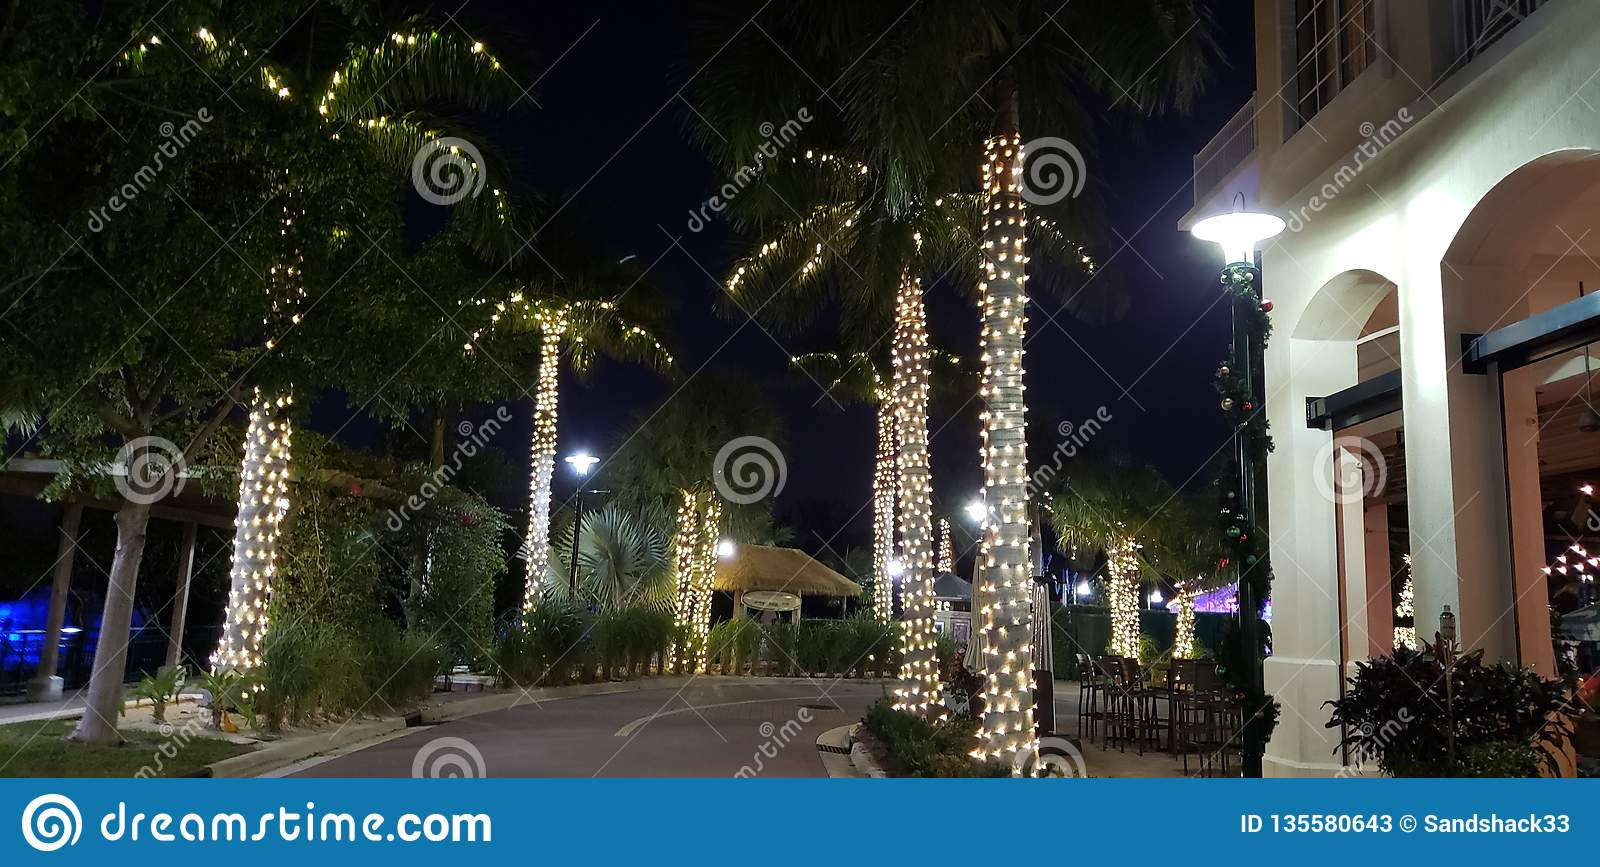 Christmas Lights In Palm Trees.Palm Trees Lit Up With Holiday Lights Stock Image Image Of